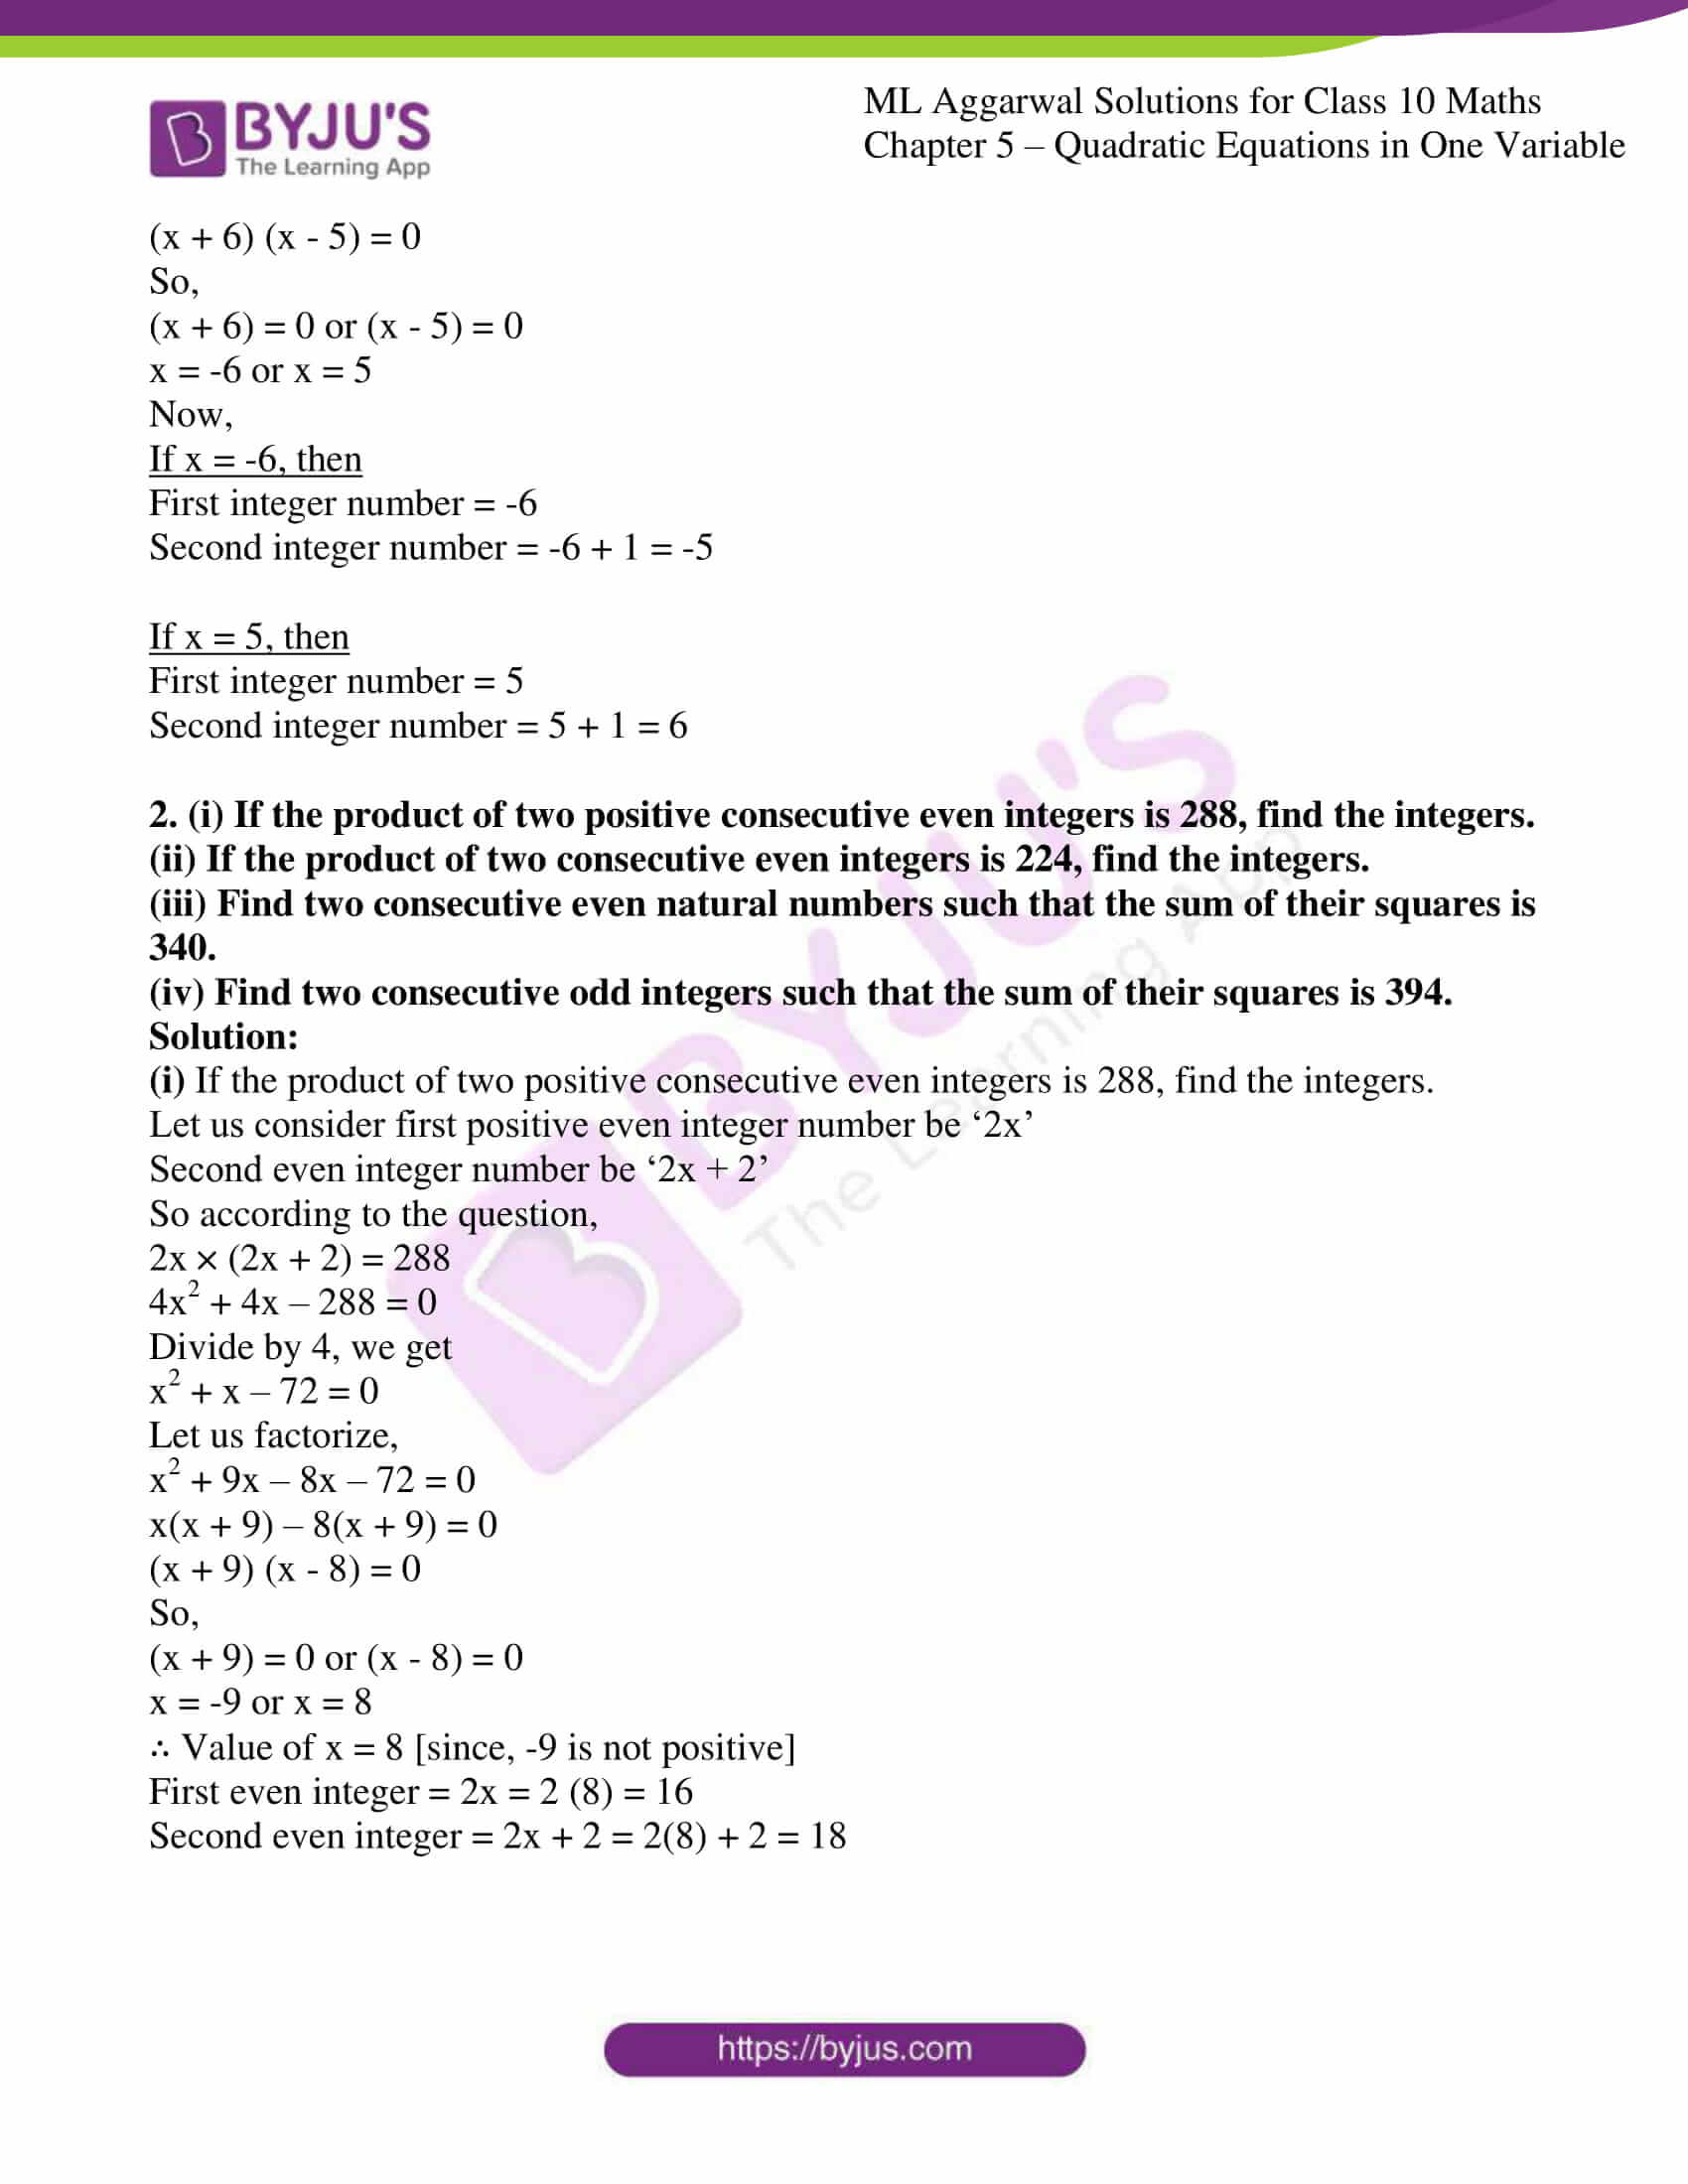 ml aggarwal solutions class 10 maths chapter 5 48